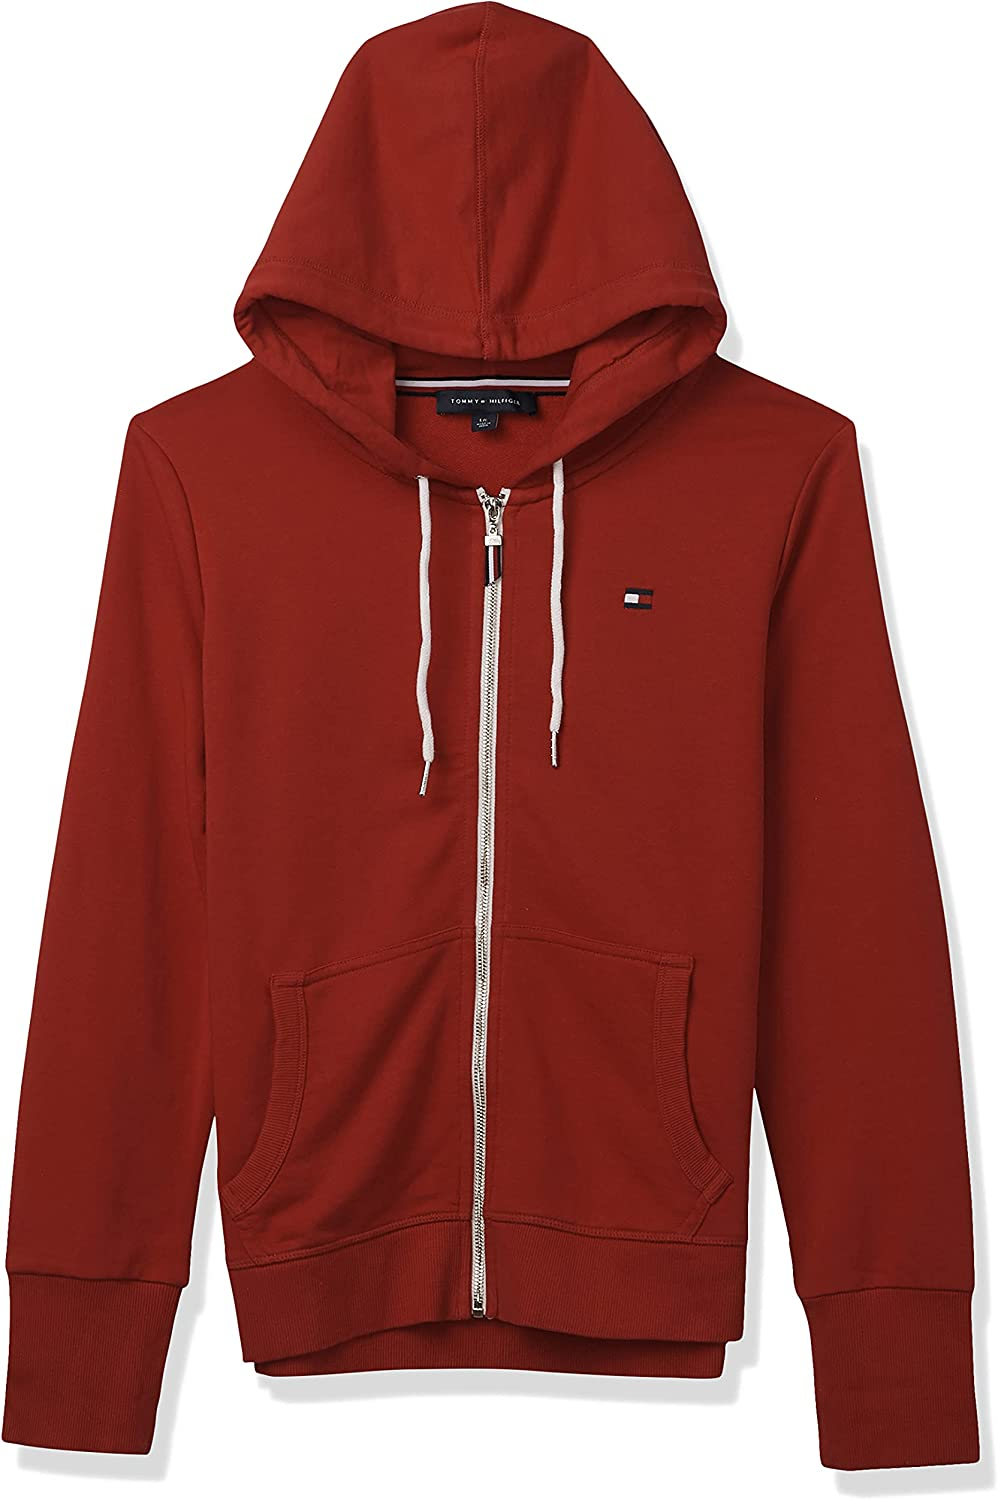 Tommy Hilfiger Women's Casual Hoodie famous Zip Now on sale